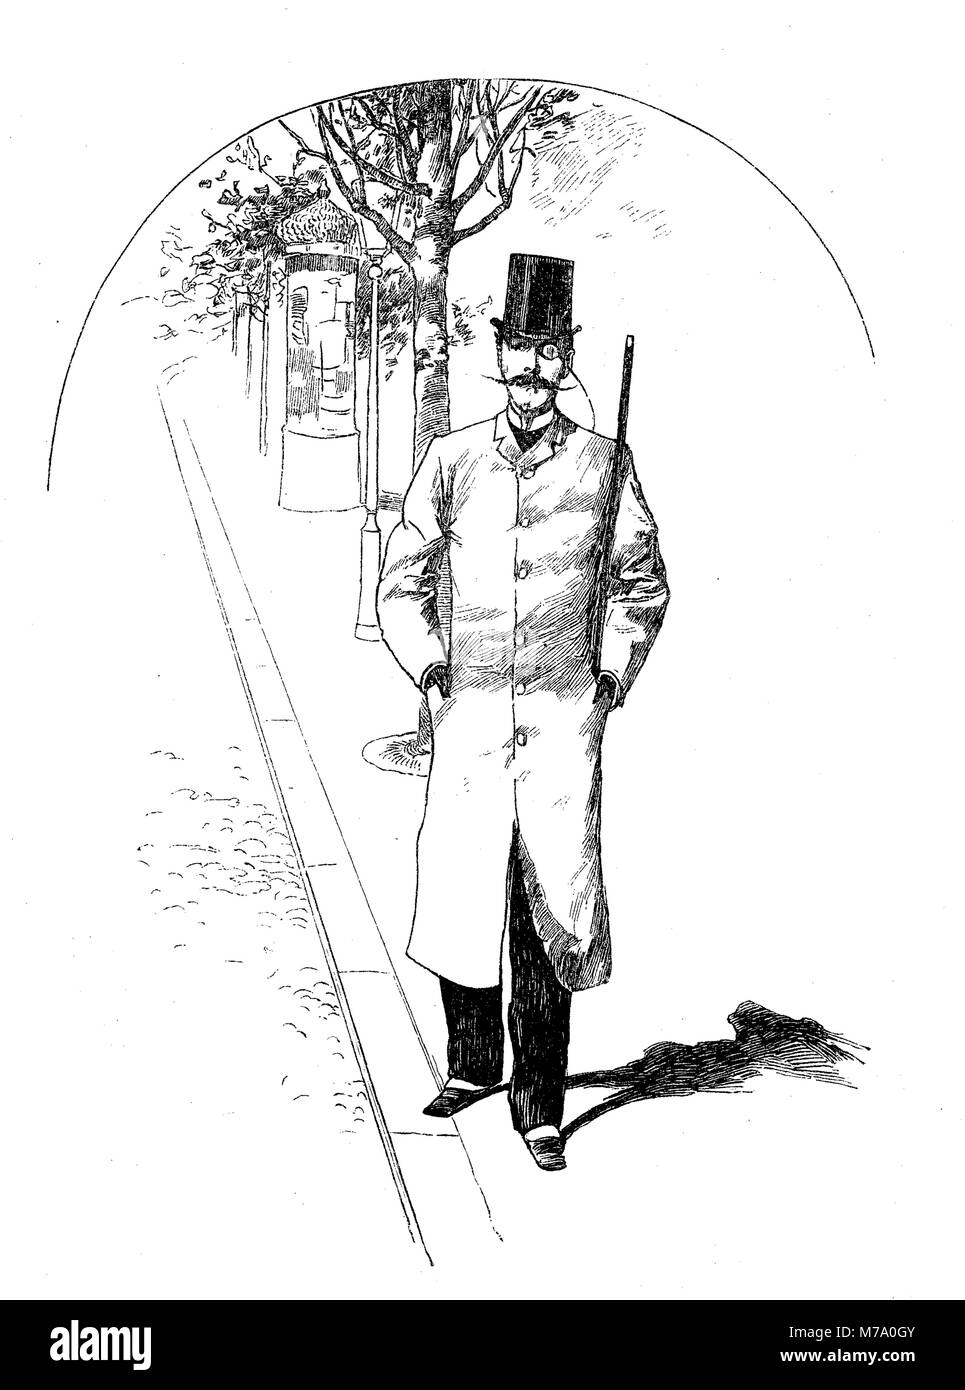 Fashionable gentleman with monocle and moustache takes a walk in town, vintage caricature - Stock Image